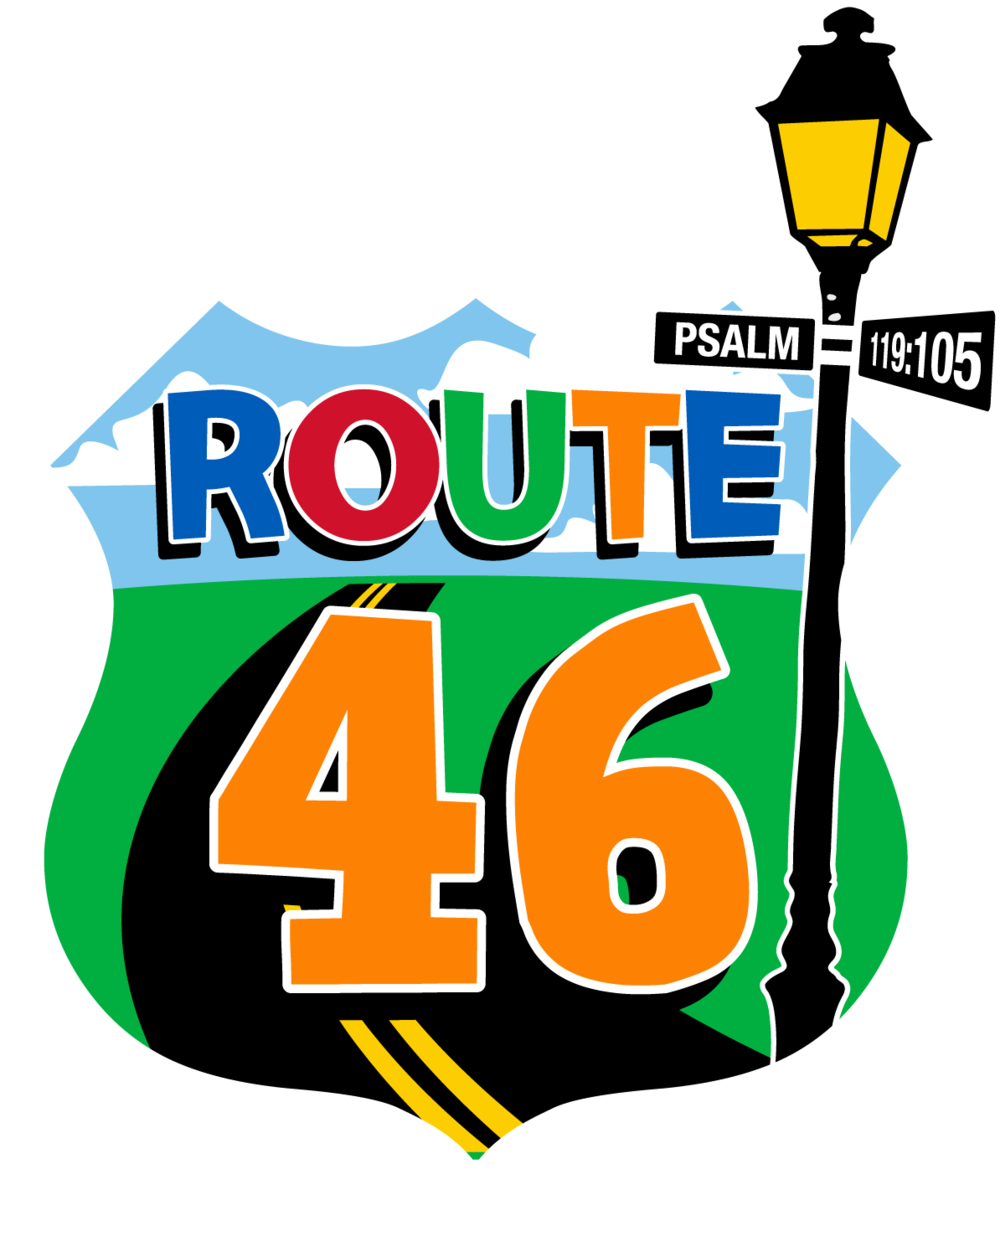 ROUTE-46-COLOR.png